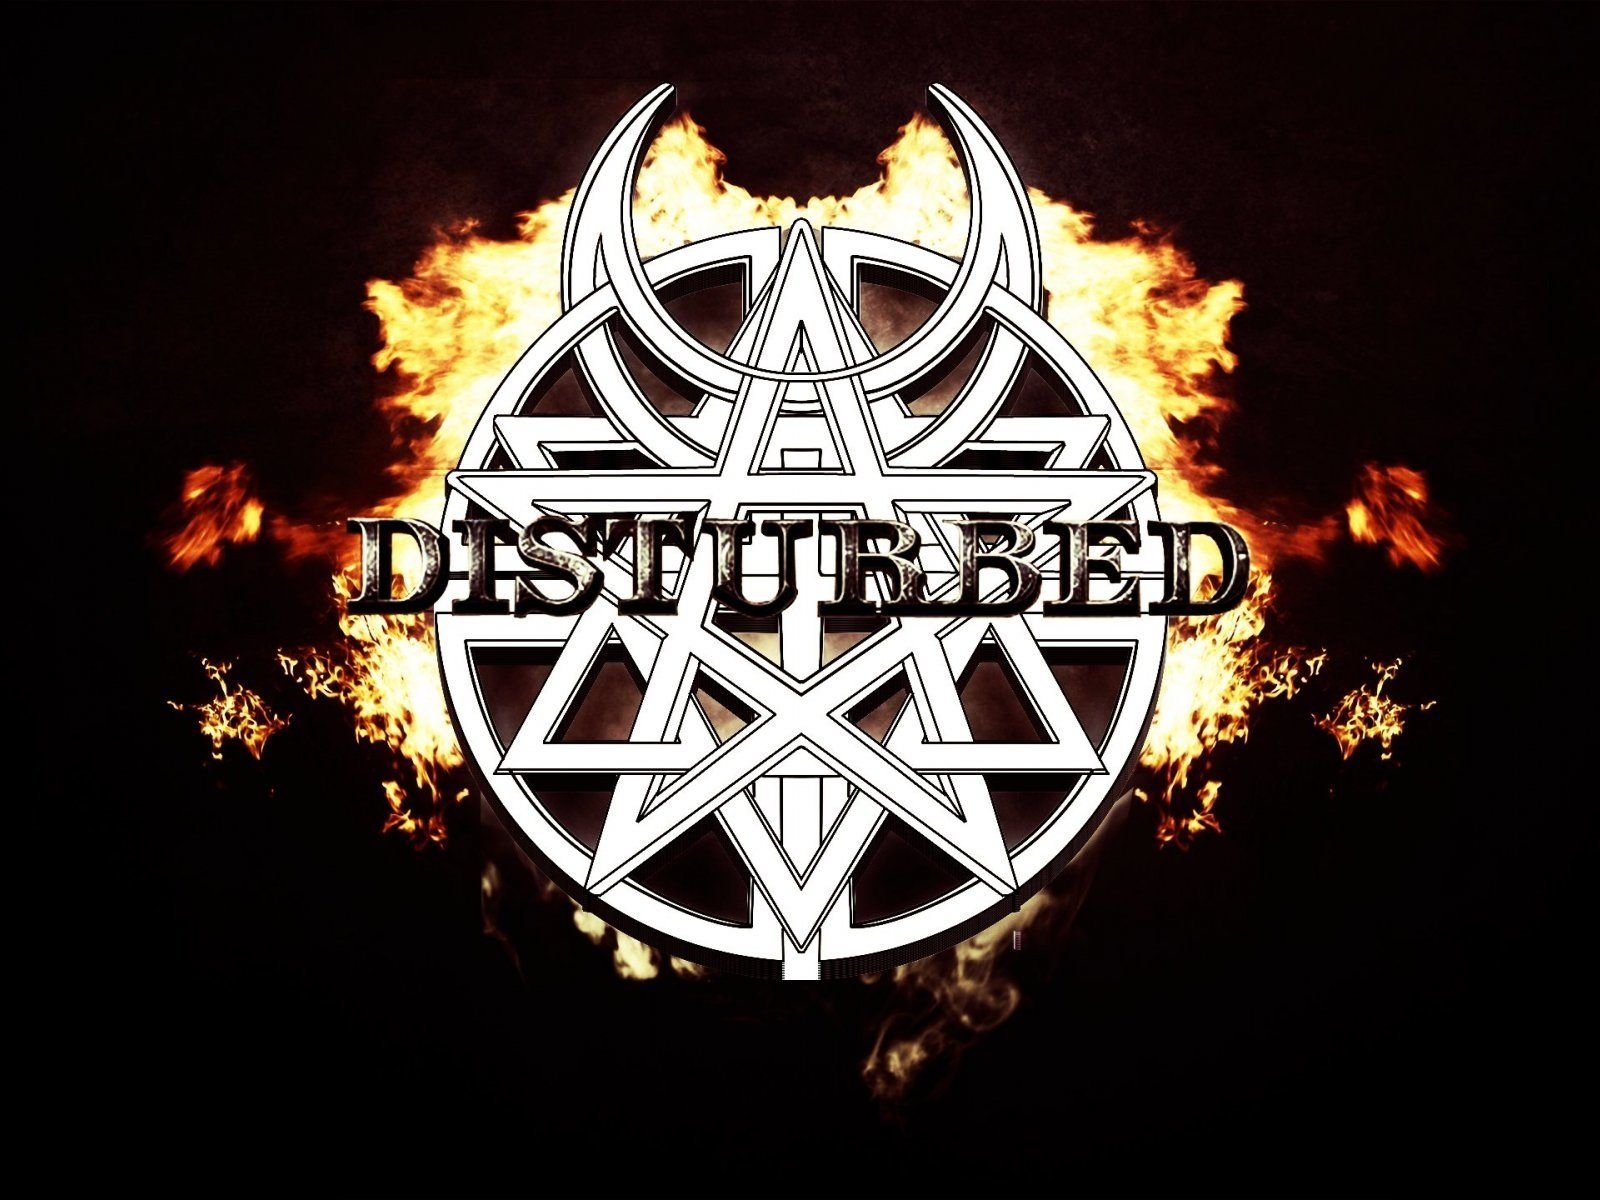 DISTURBED DOWNLOAD GRATUITO MUSICA BELIEVE